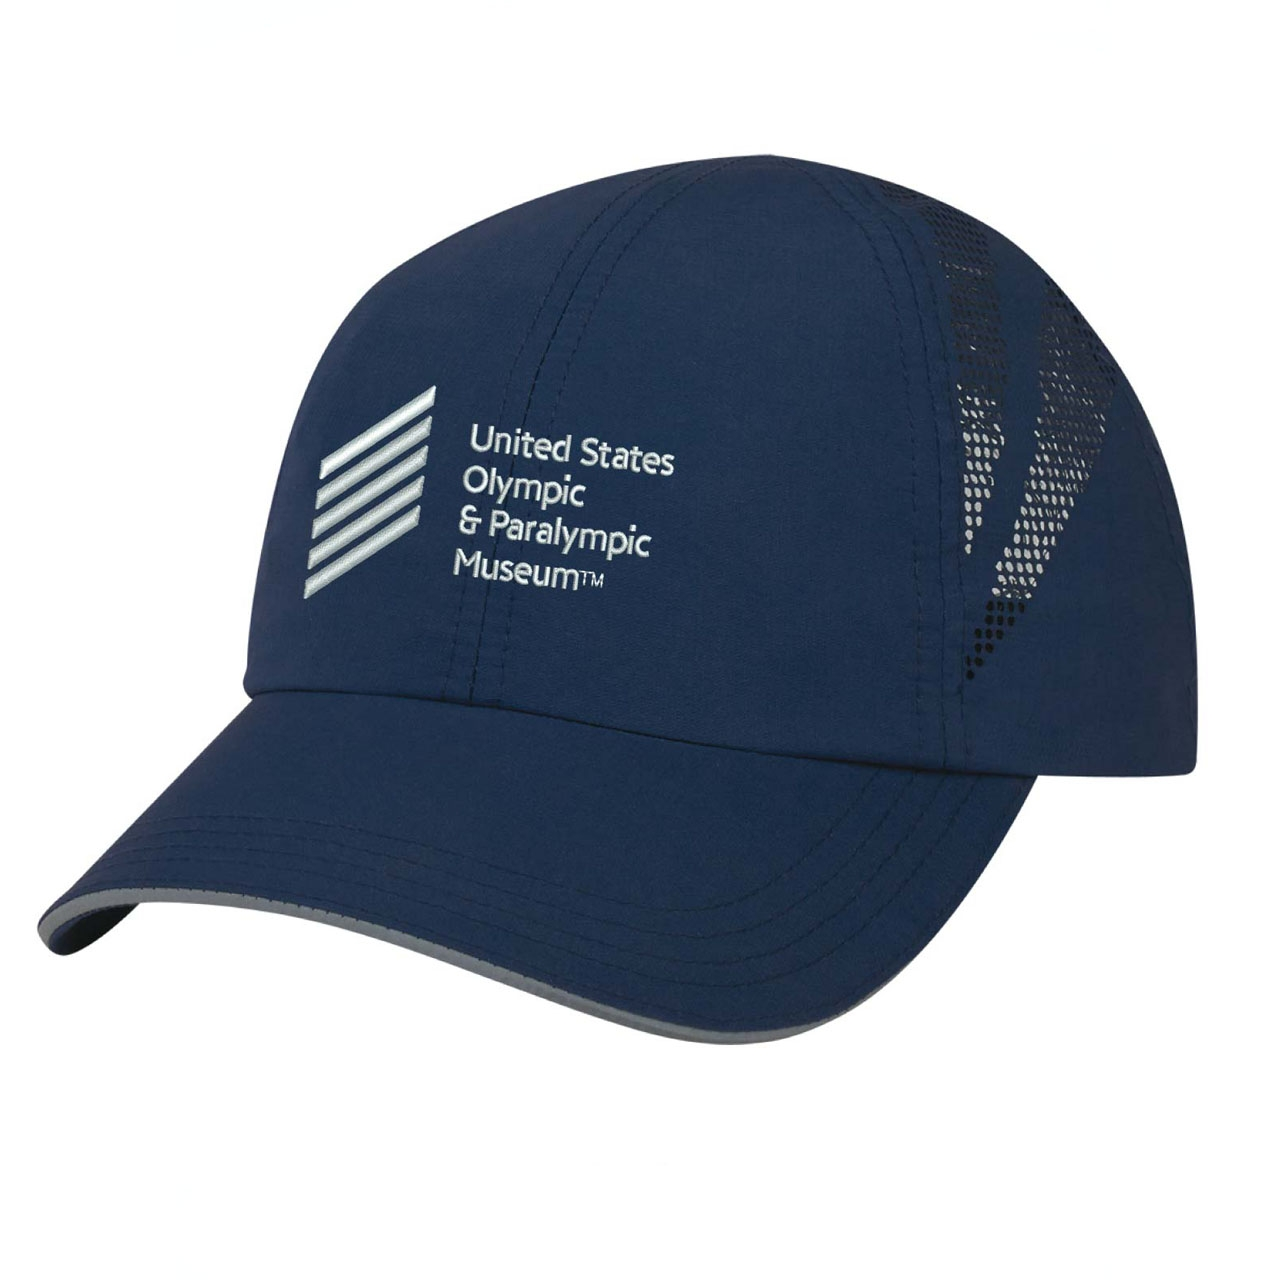 ADULT NAVY USOPM LOGO HAT